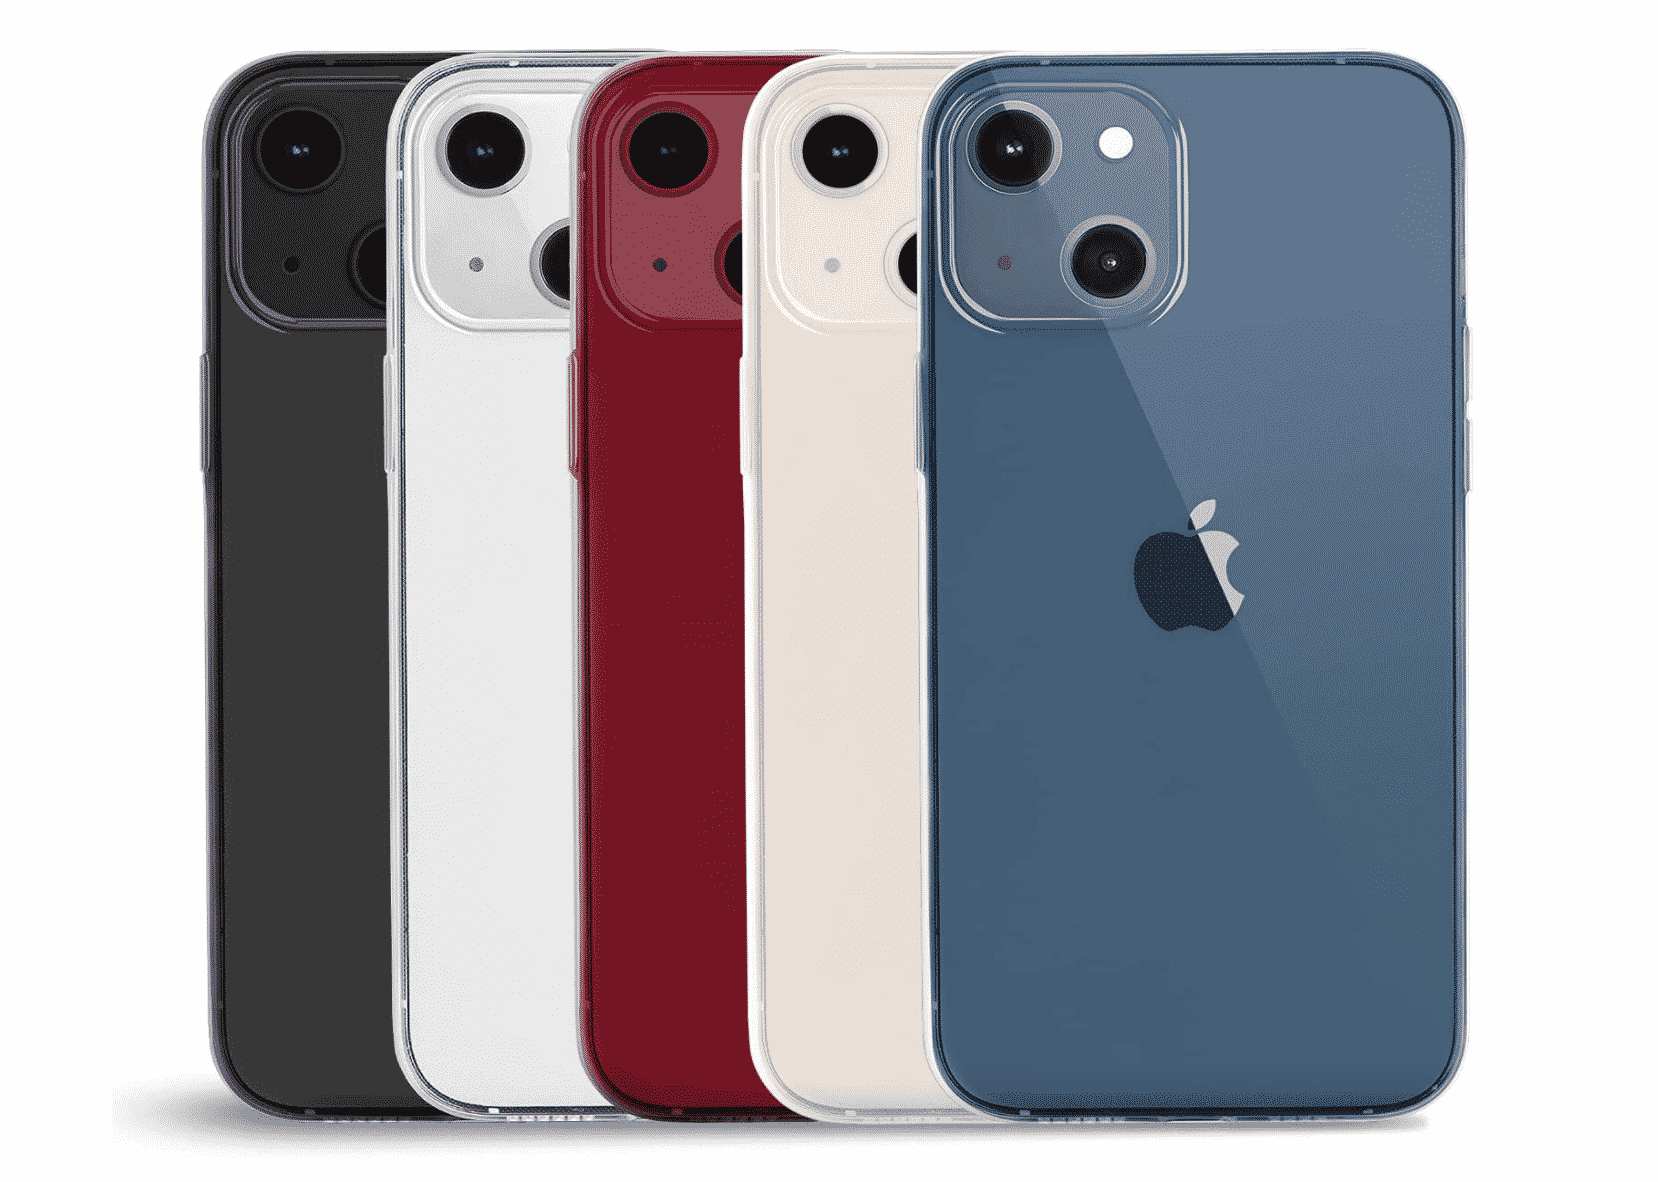 Show Your iPhone 13 Off In All Its Glory with the Branding-Free Totallee Case, Now 20% Off